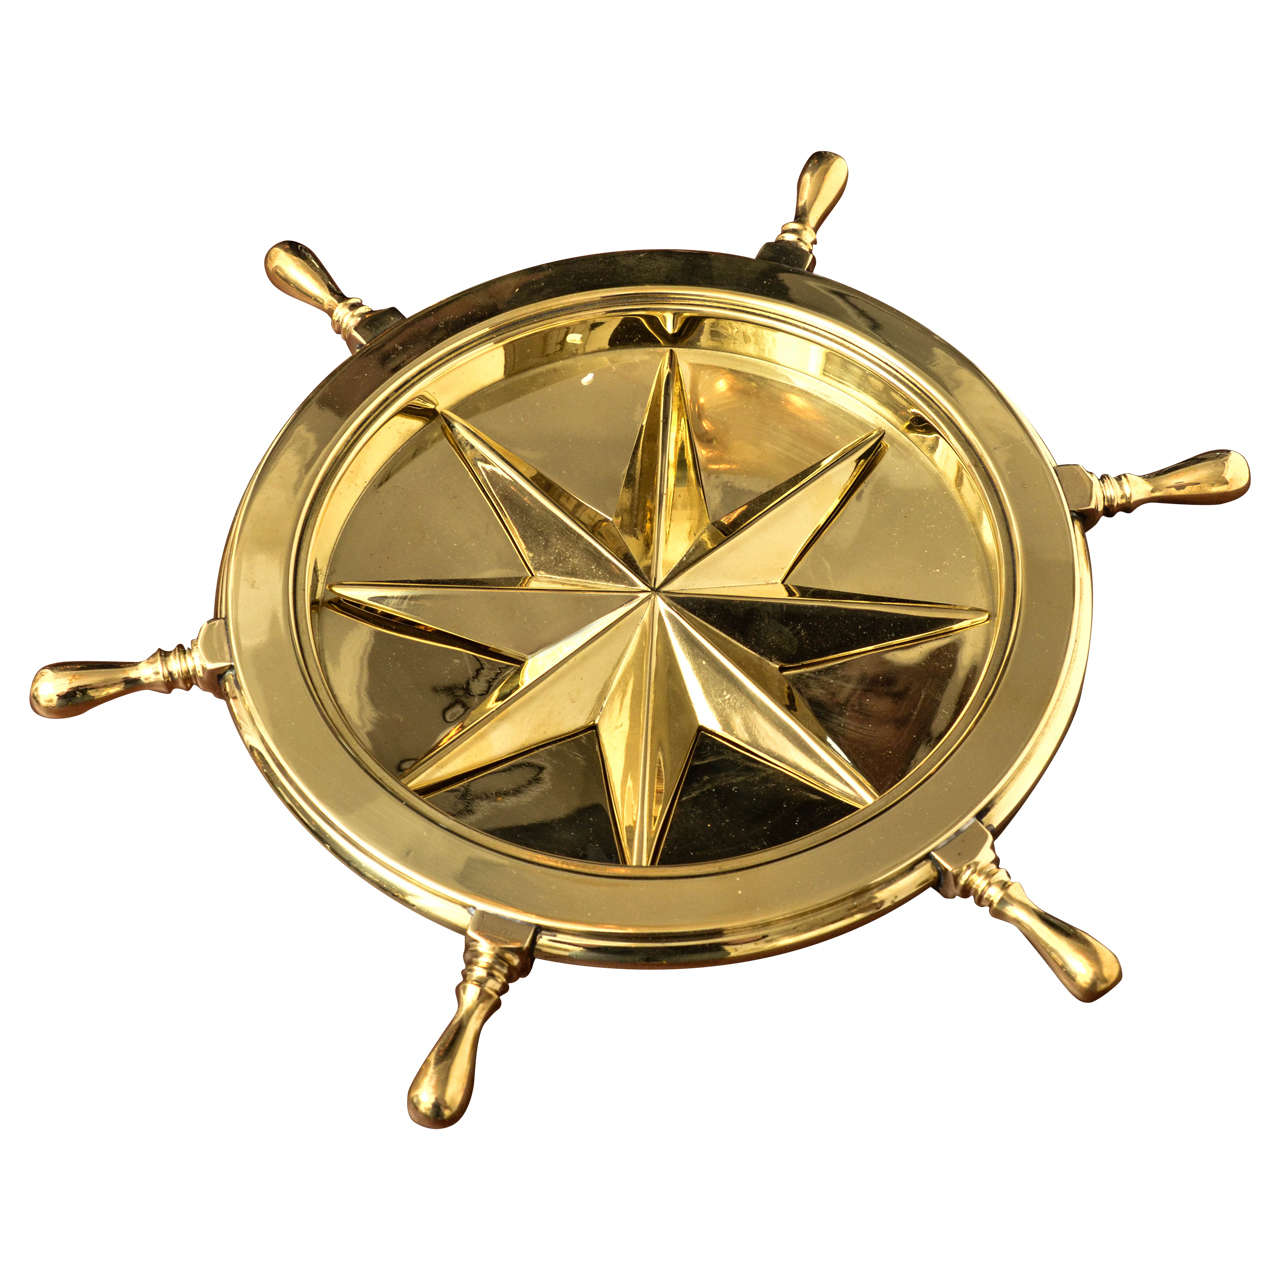 revolving chair wheel price in pakistan bamboo office mat nautical themed brass ash tray with rotating ship